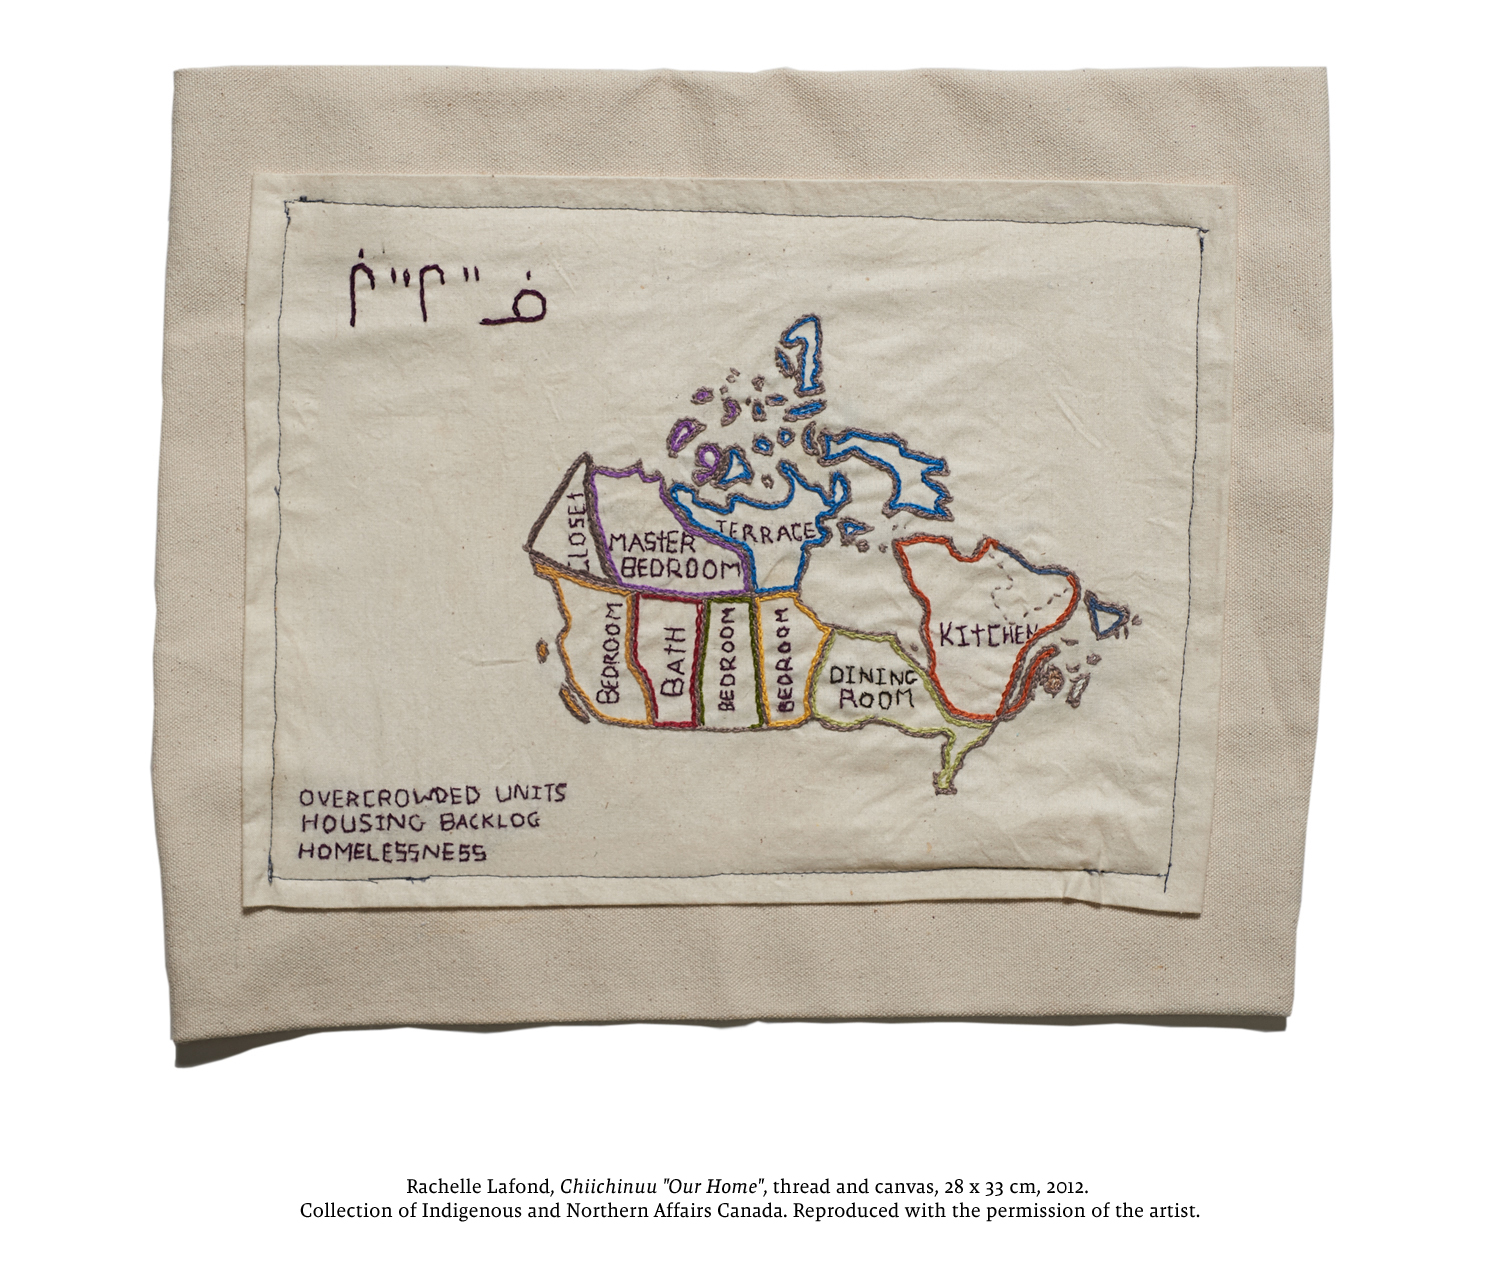 Image of a textile map of Canada